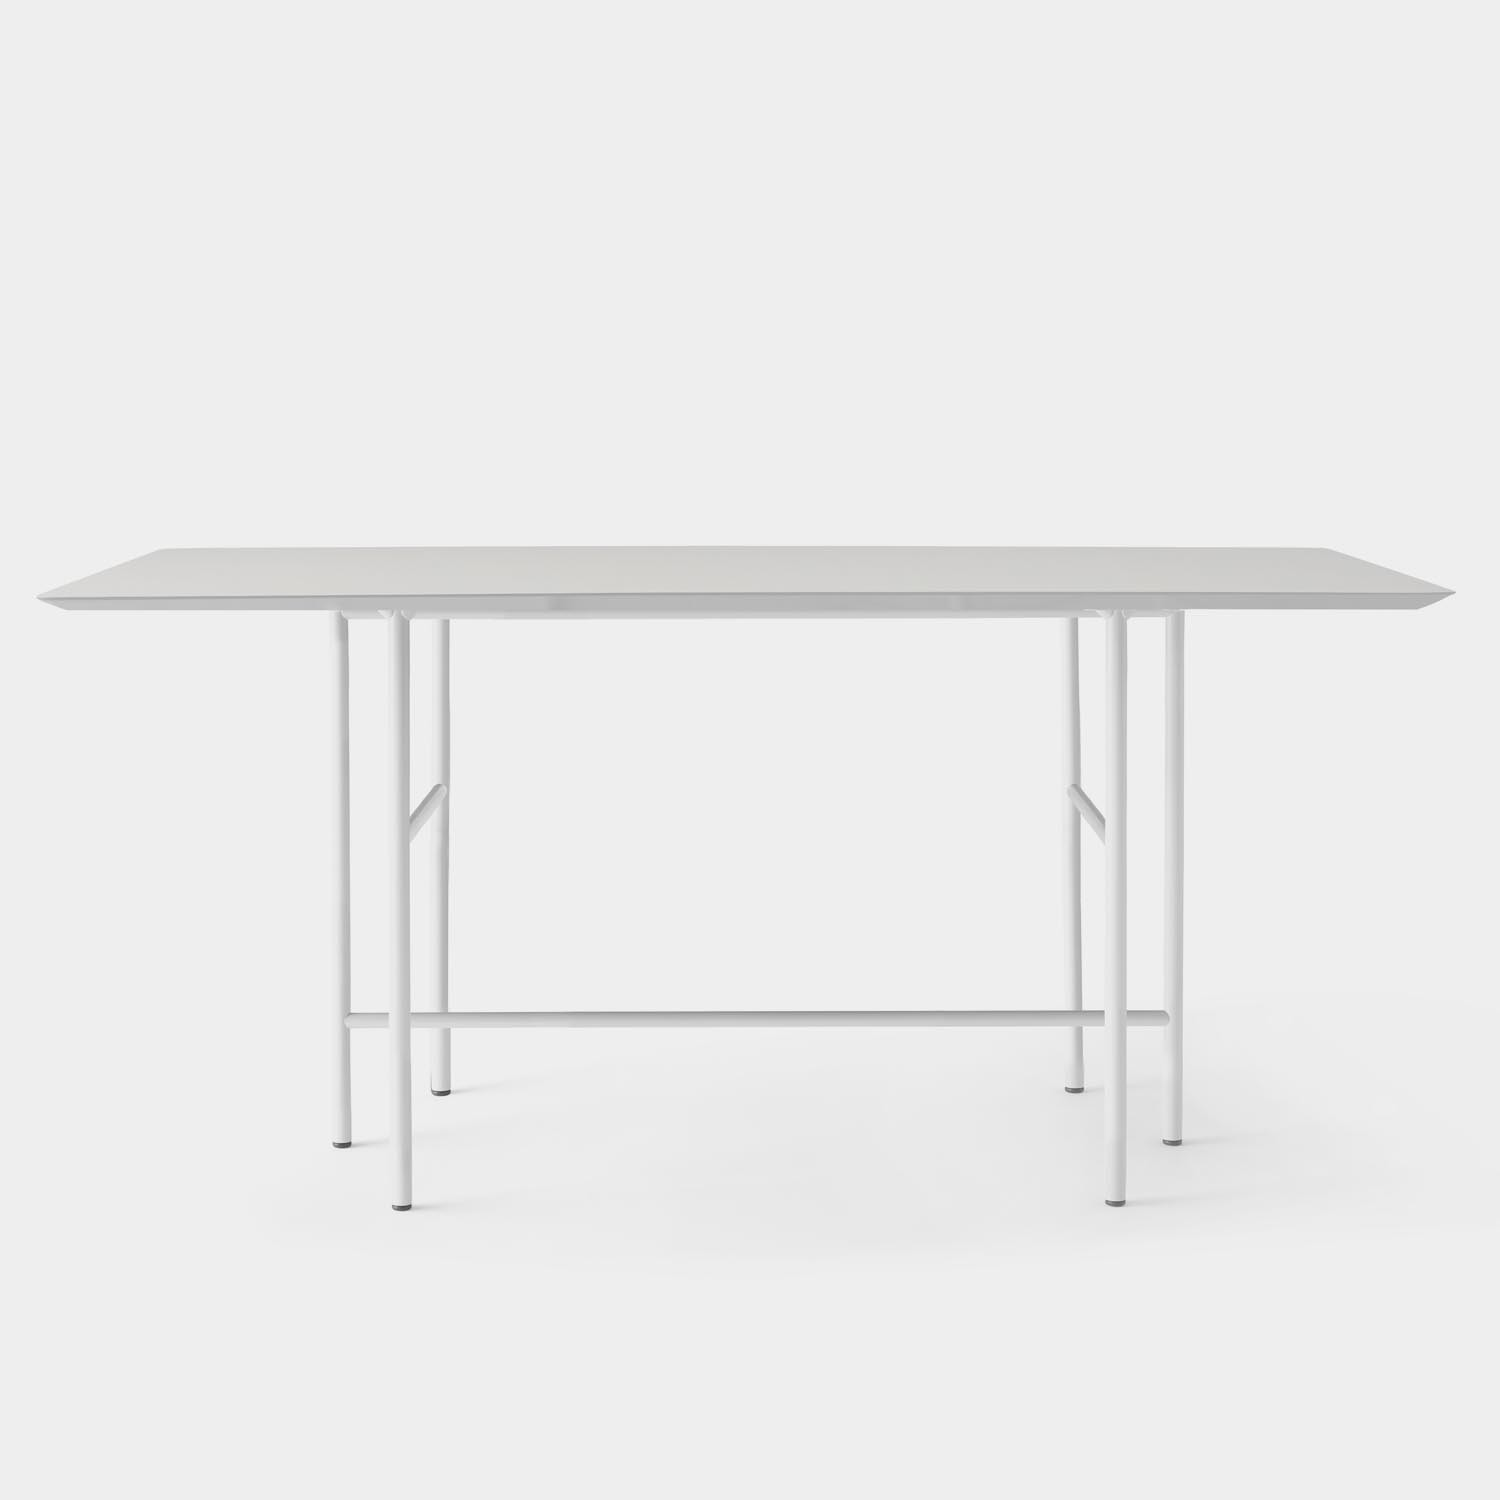 Snaregade Counter Table, Linoleum Top, Light Gray Base